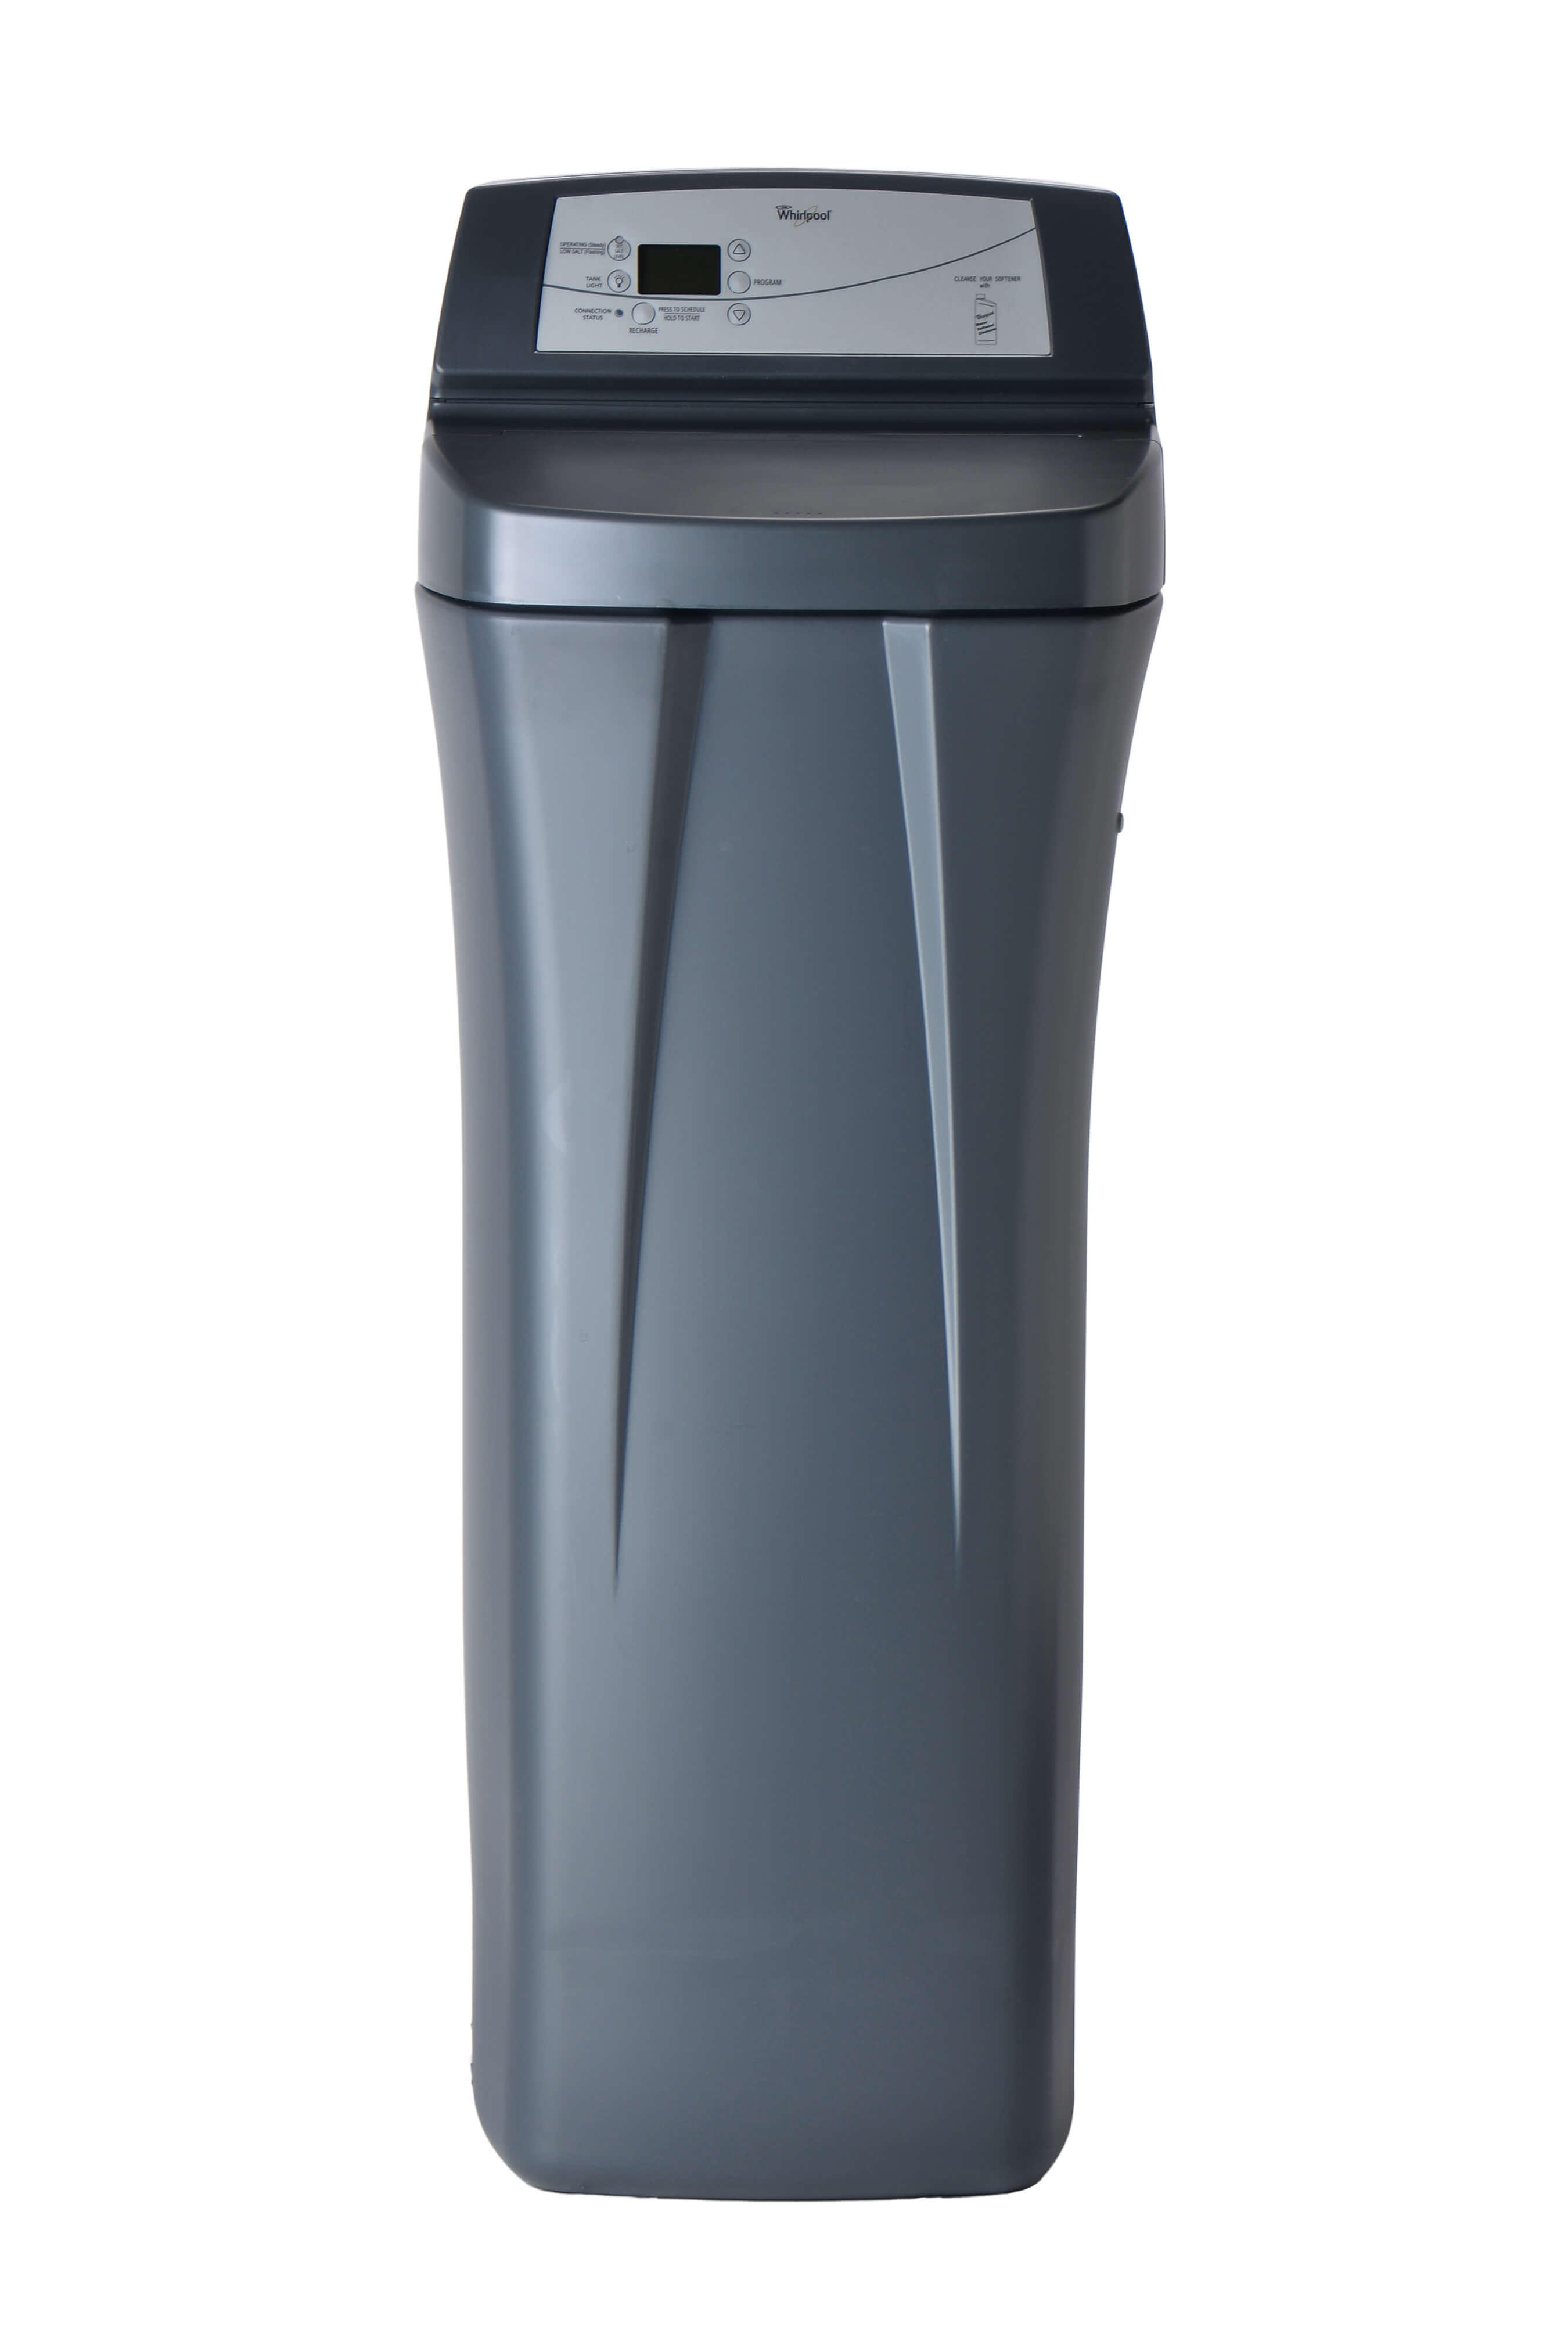 New Water Softener Wifi Enabled Smart Water Softener System Whirlpool